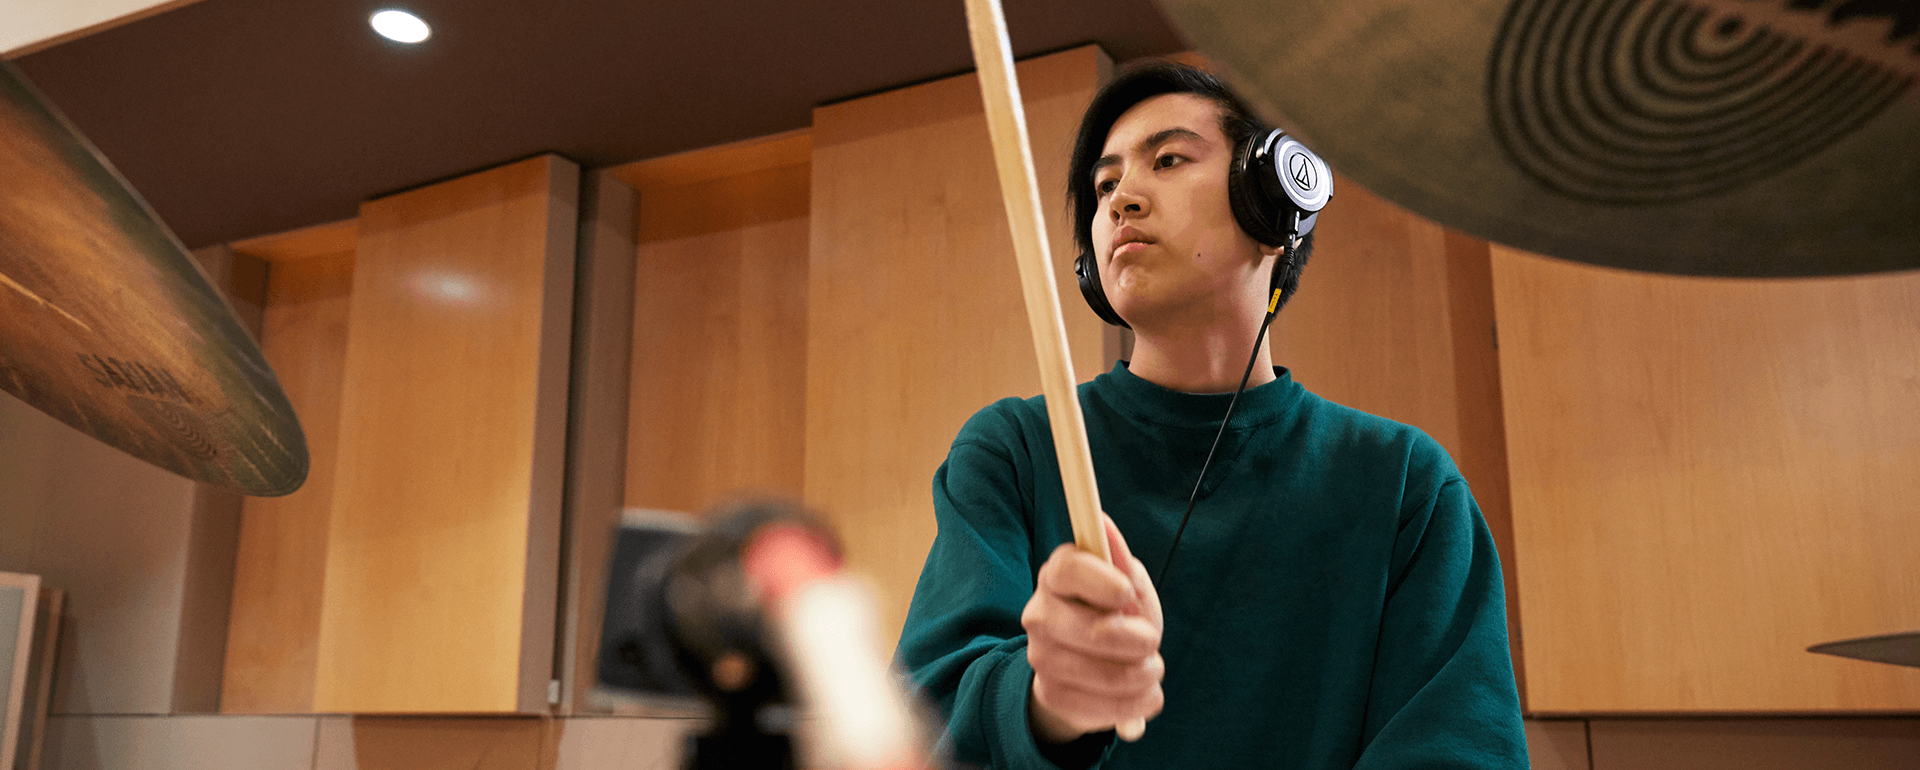 Young man playing drums while wearing headphones.